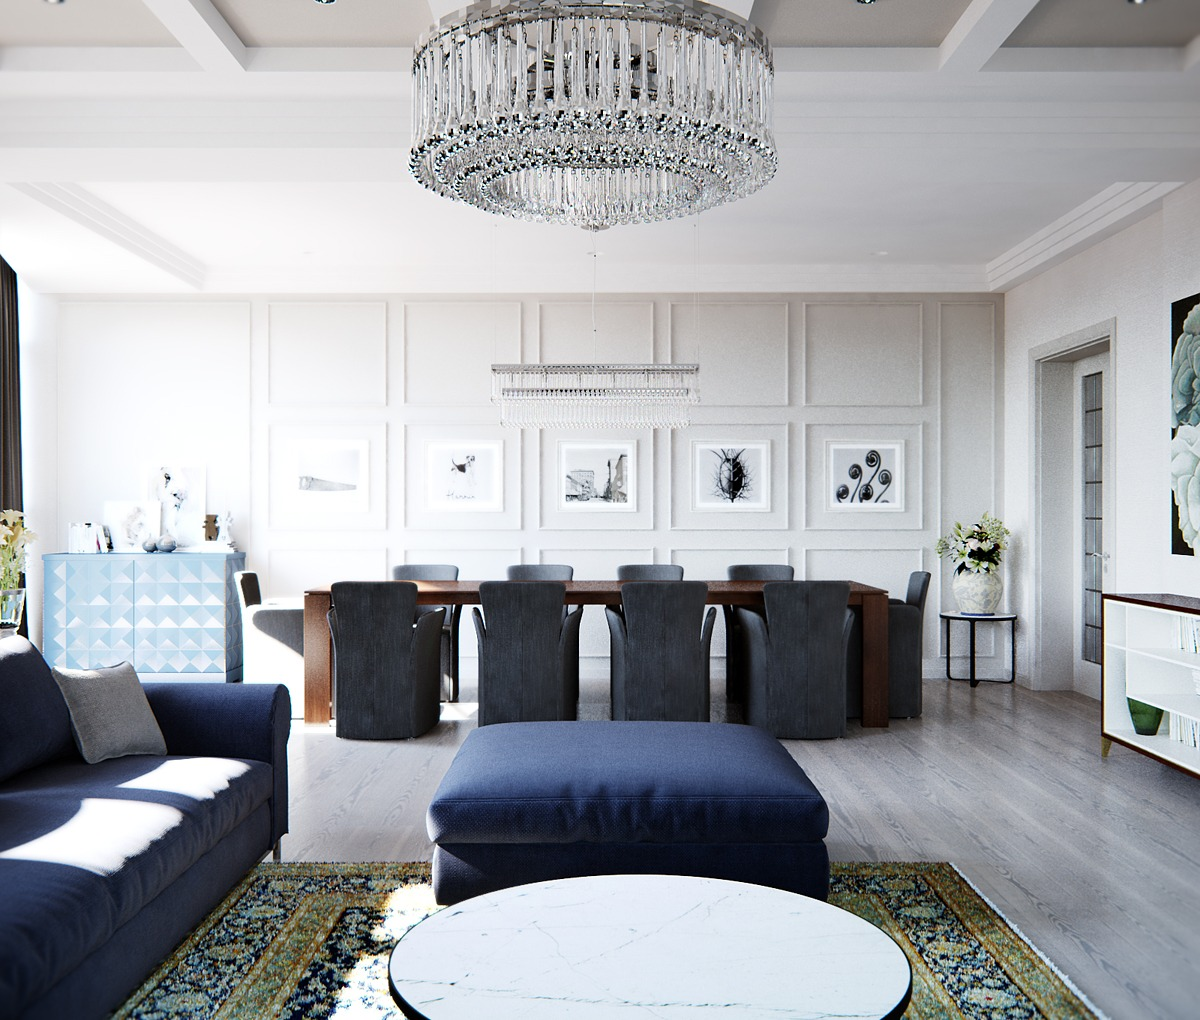 Open Dining Room - A stylish apartment with classic design features